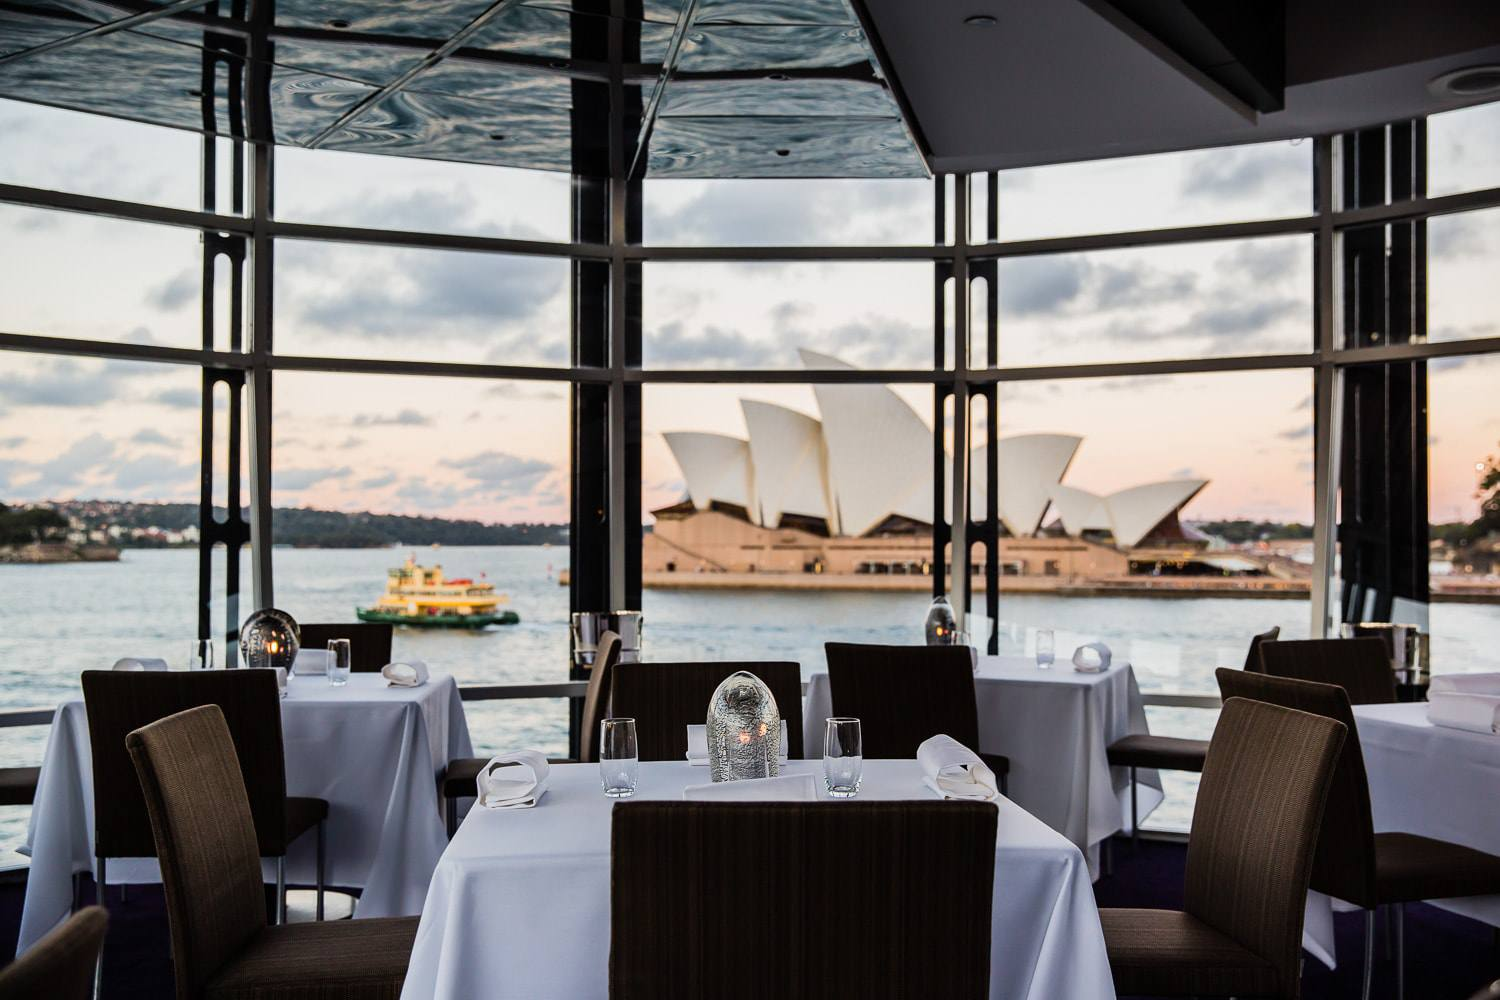 7 World Famous Restaurants To Sample In Sydney